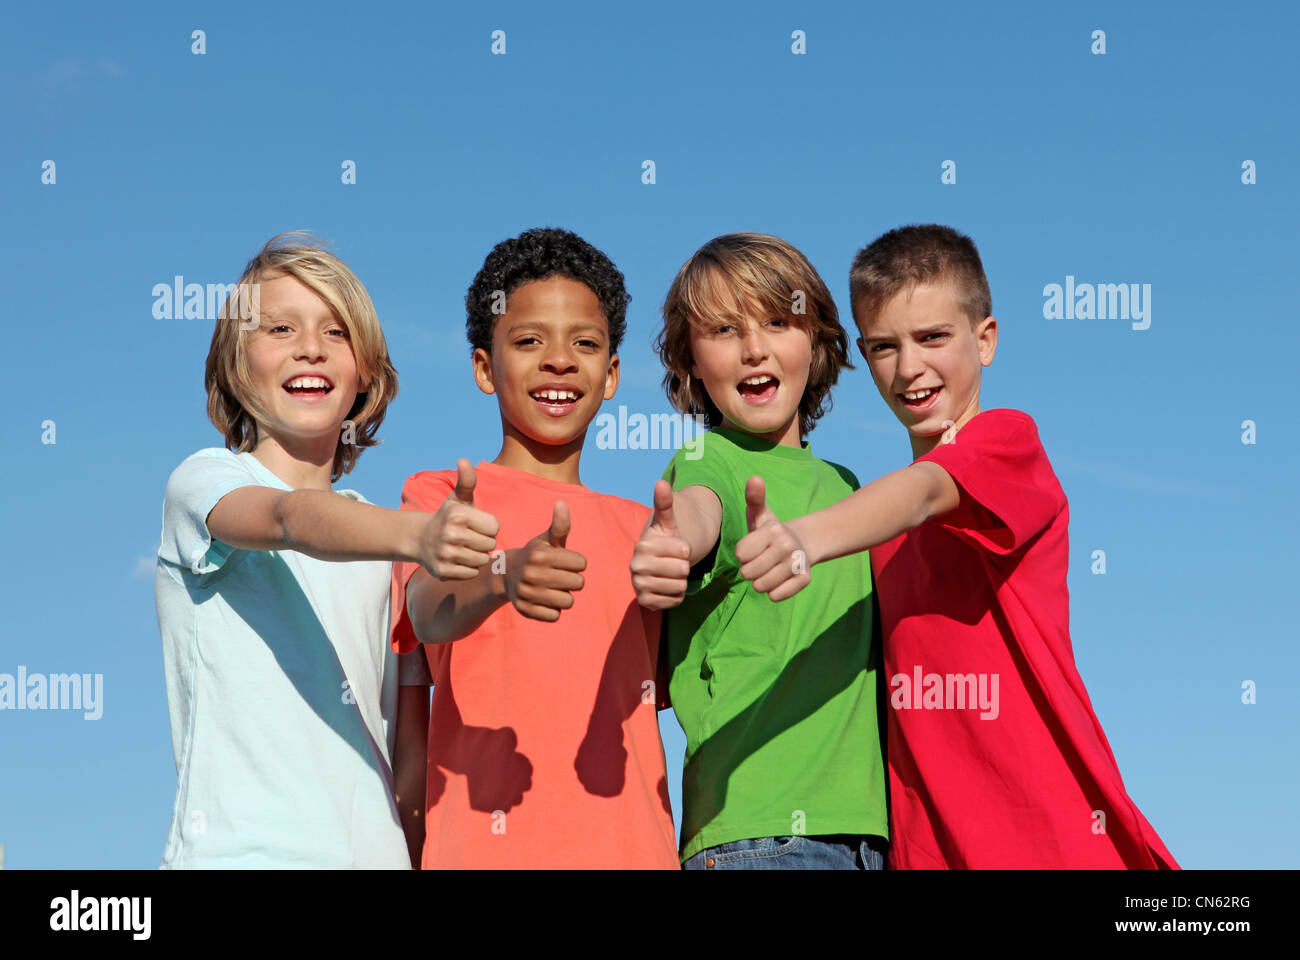 group of divderse kids at summer camp with thumbs up - Stock Image